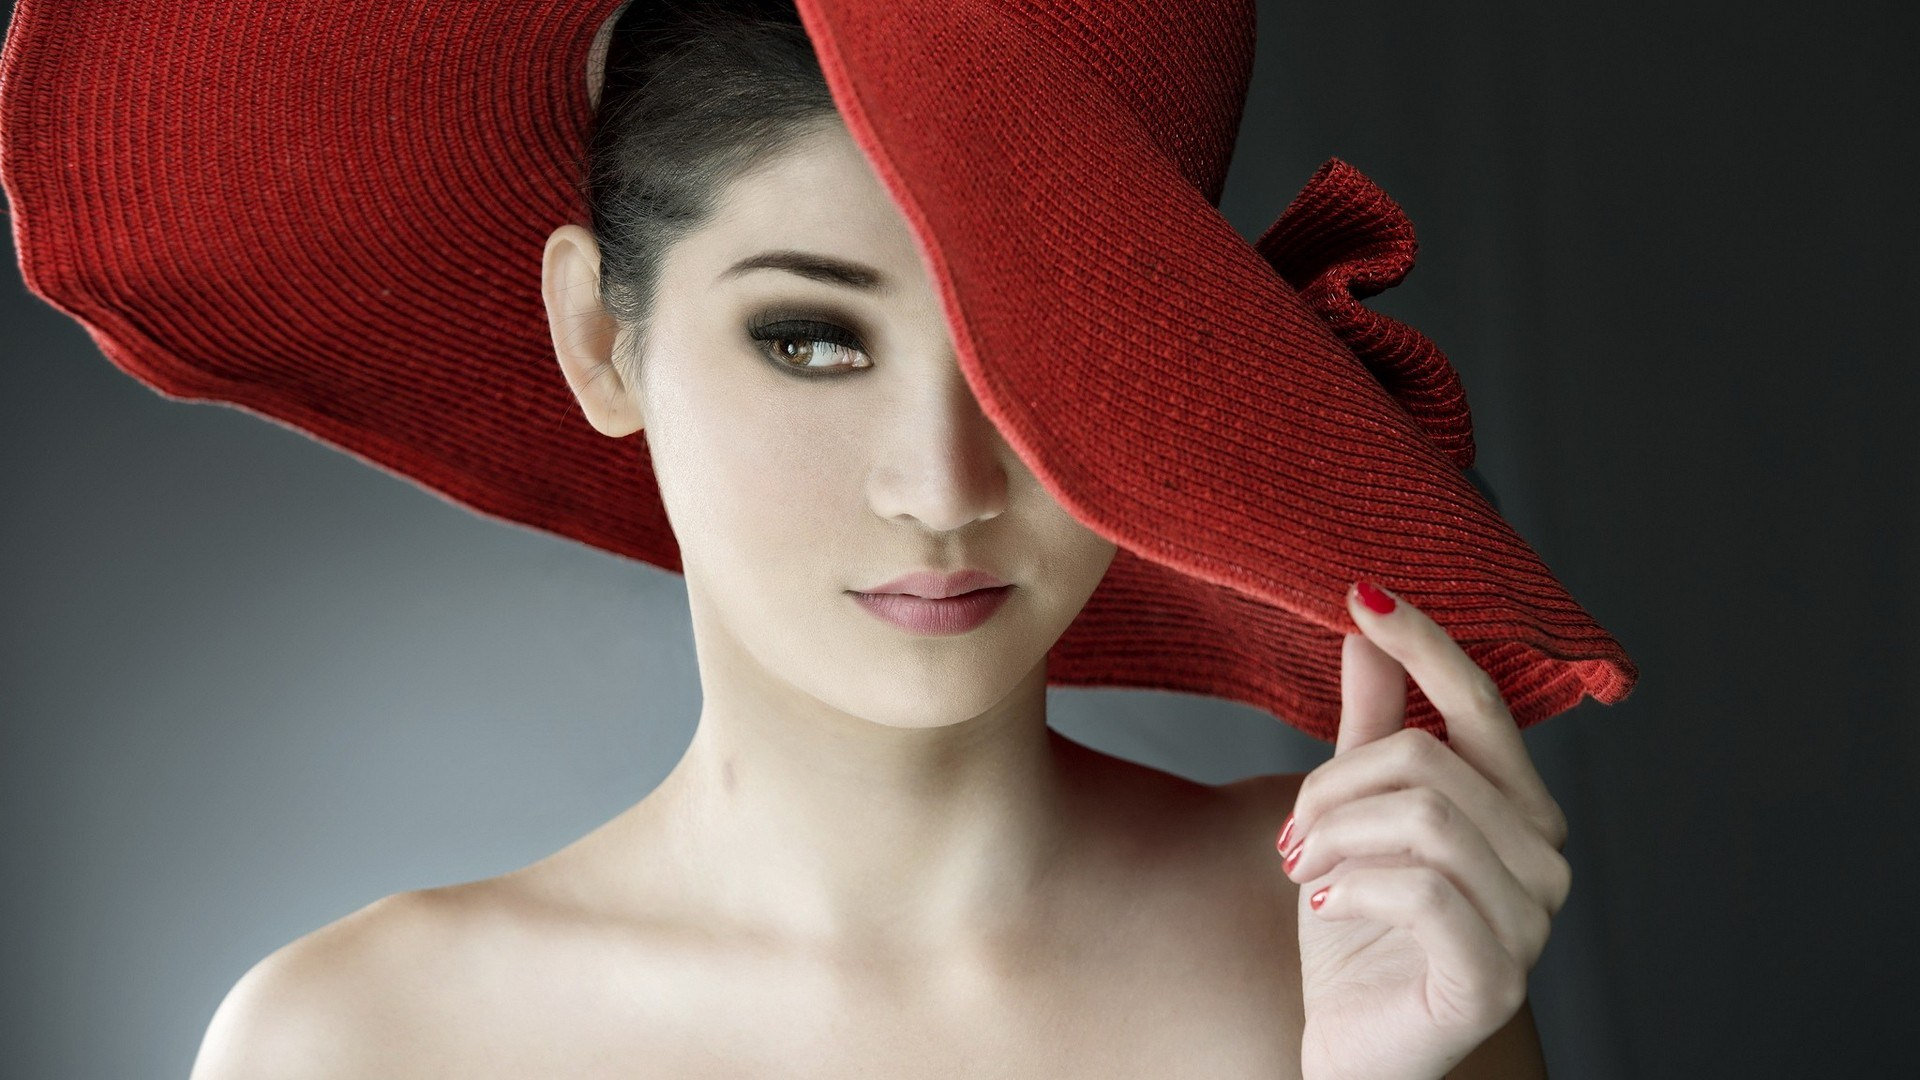 fashion-red-hat-brunette-model-girl-portrait-wallpaper-